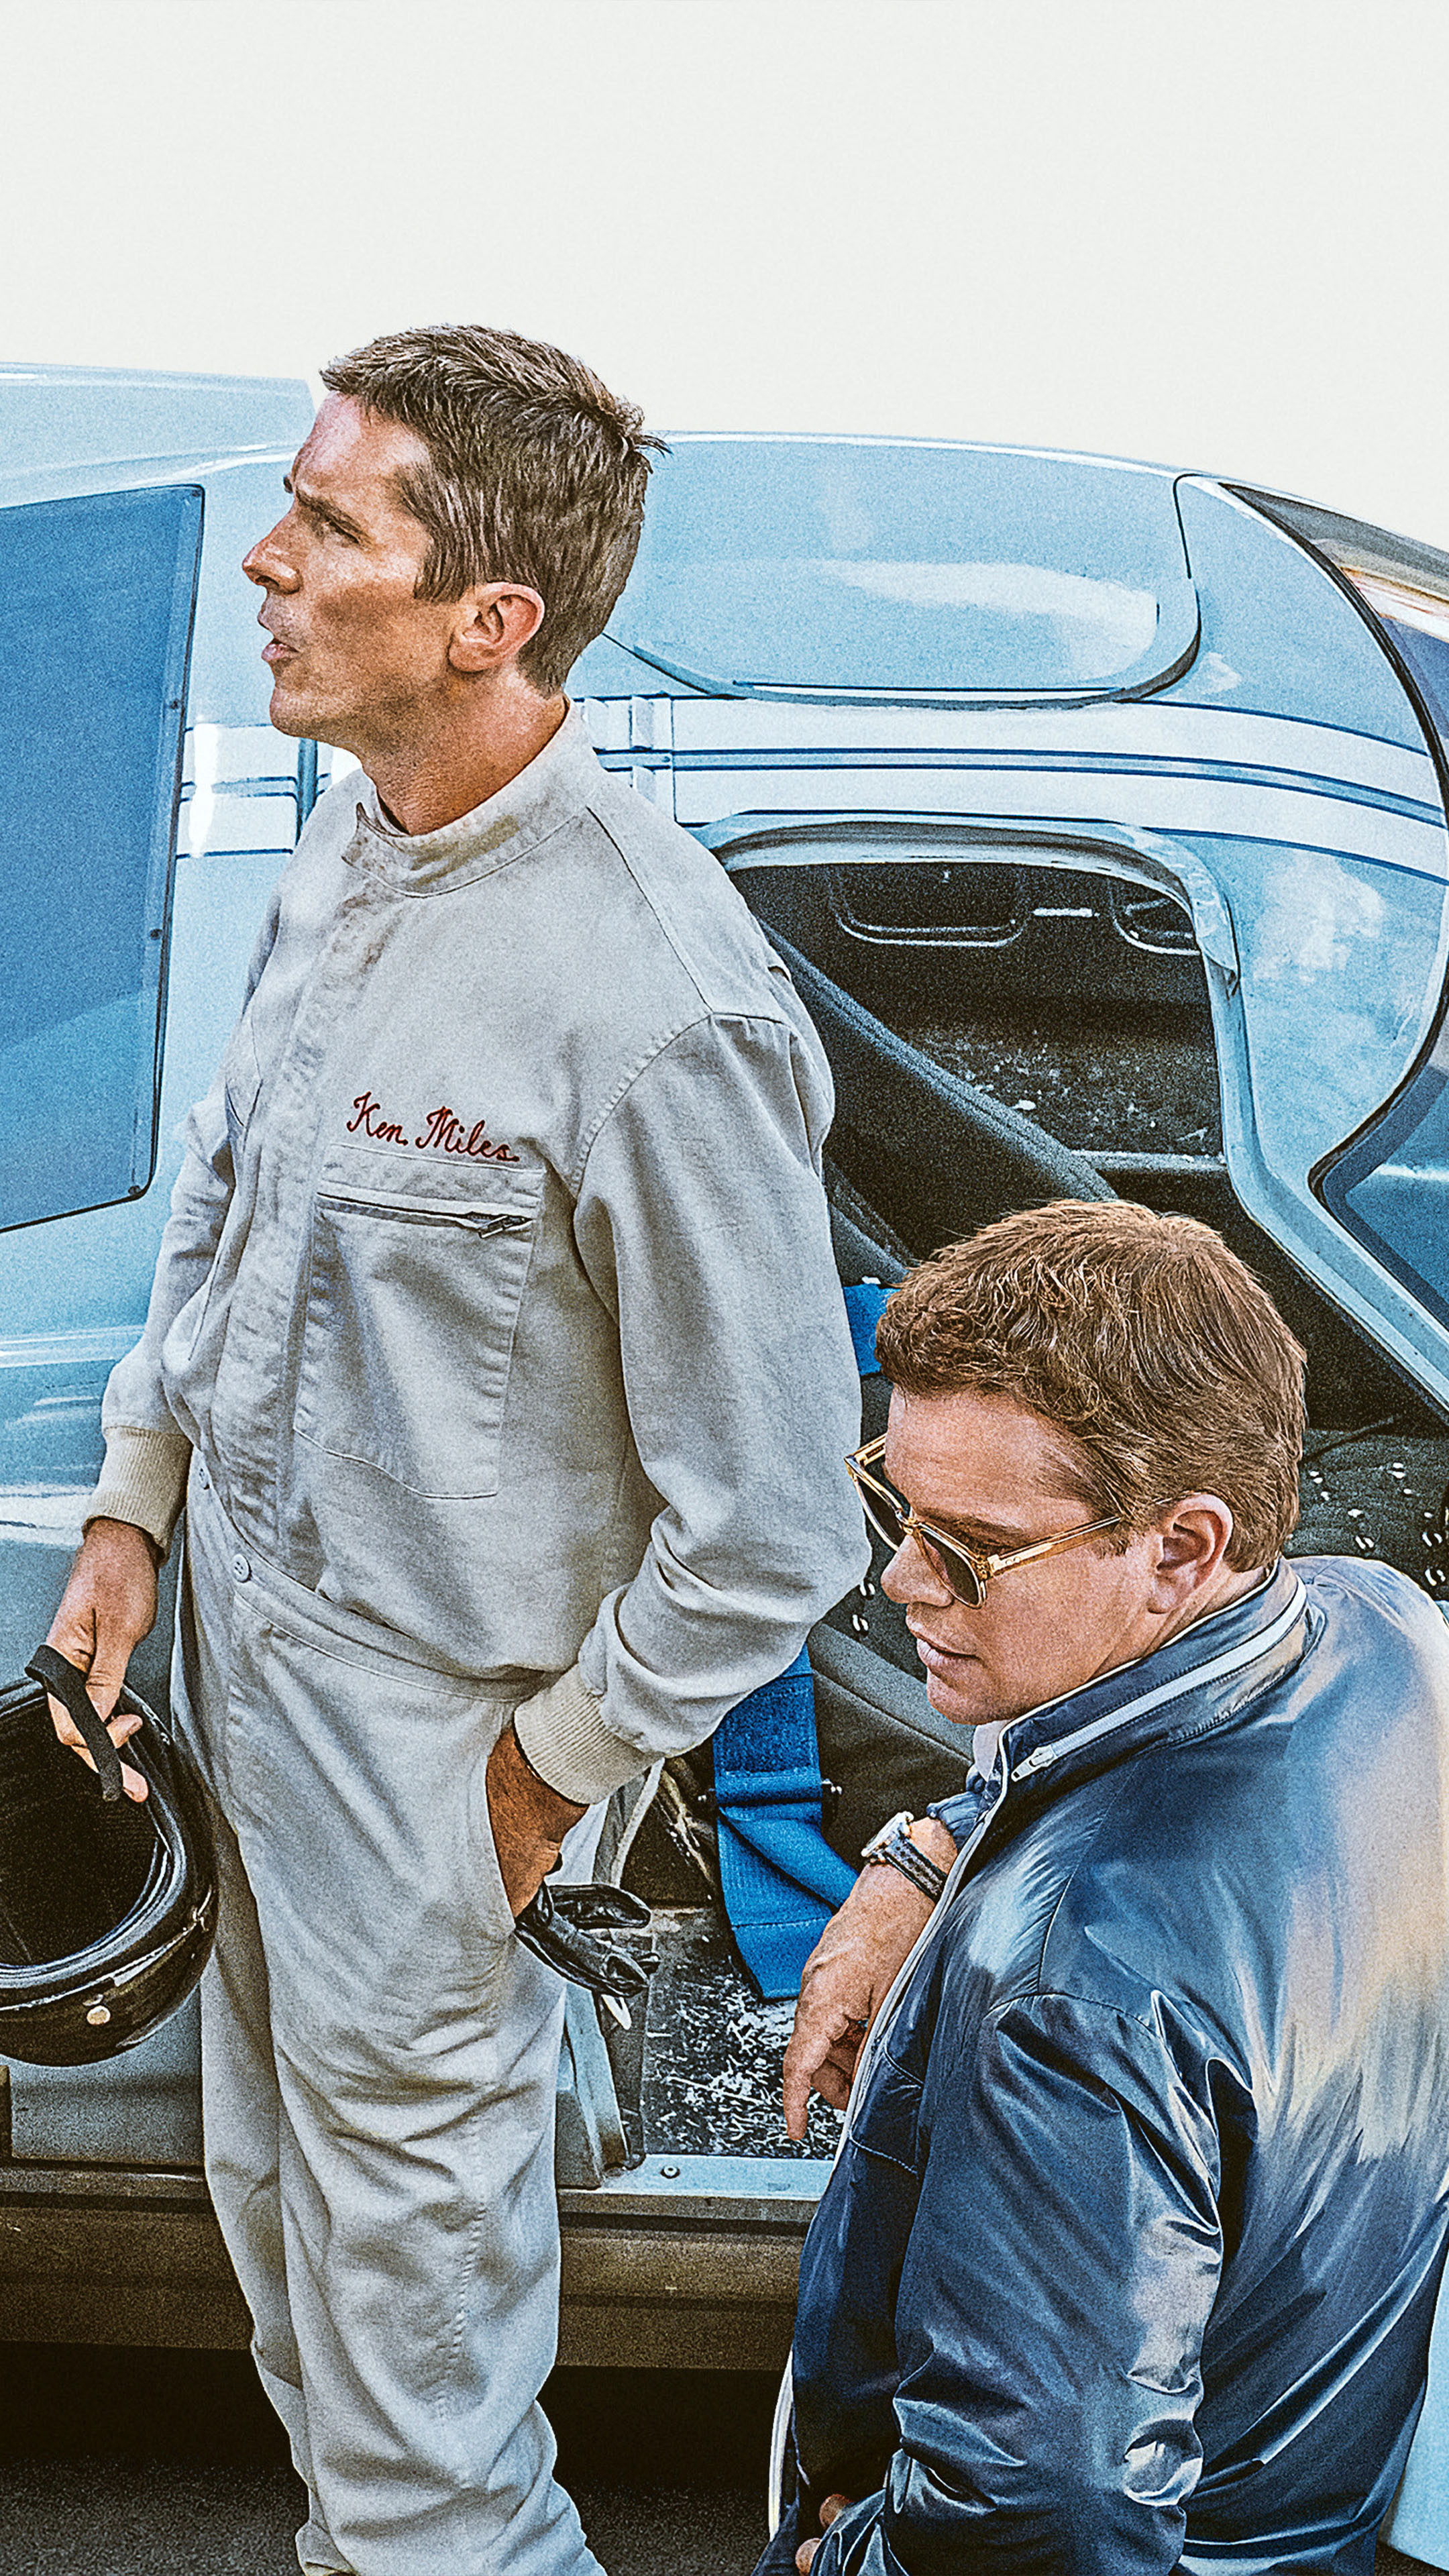 Christian Bale amp Matt Damon In Ford v Ferrari 2019 Free 4K